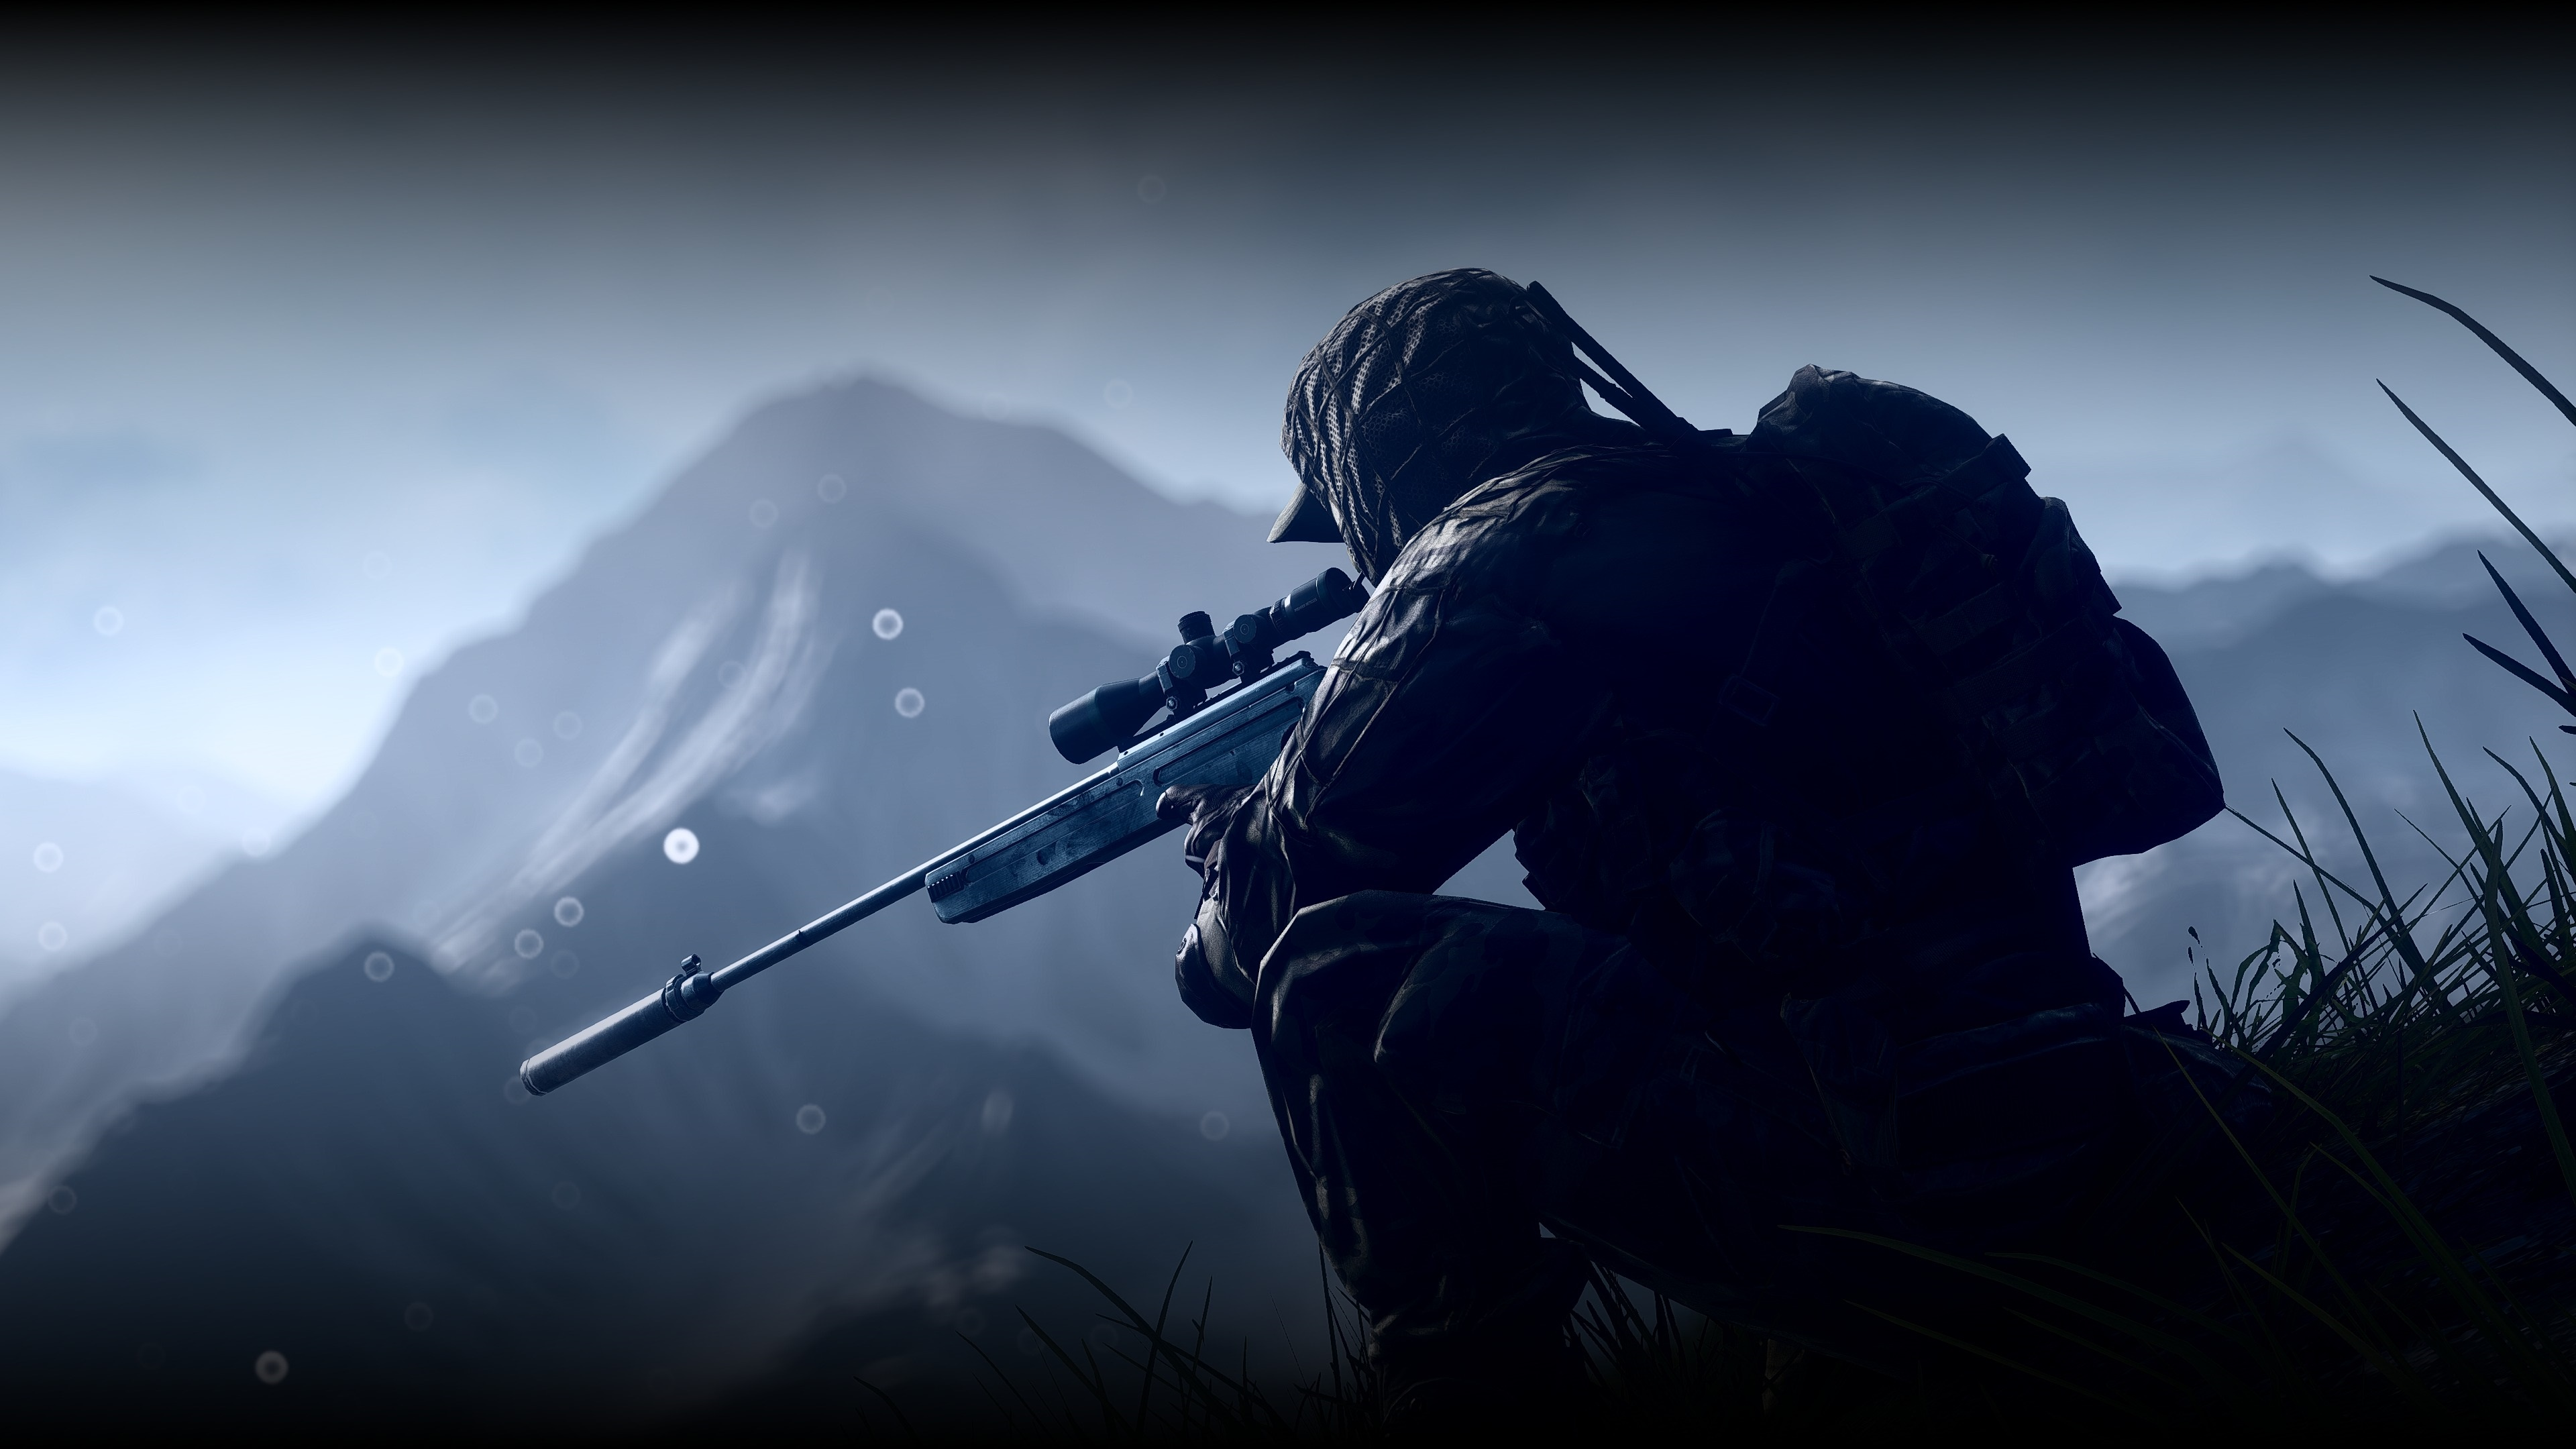 Wallpaper Battlefield 4 Soldier Sniper 3840x2160 Uhd 4k